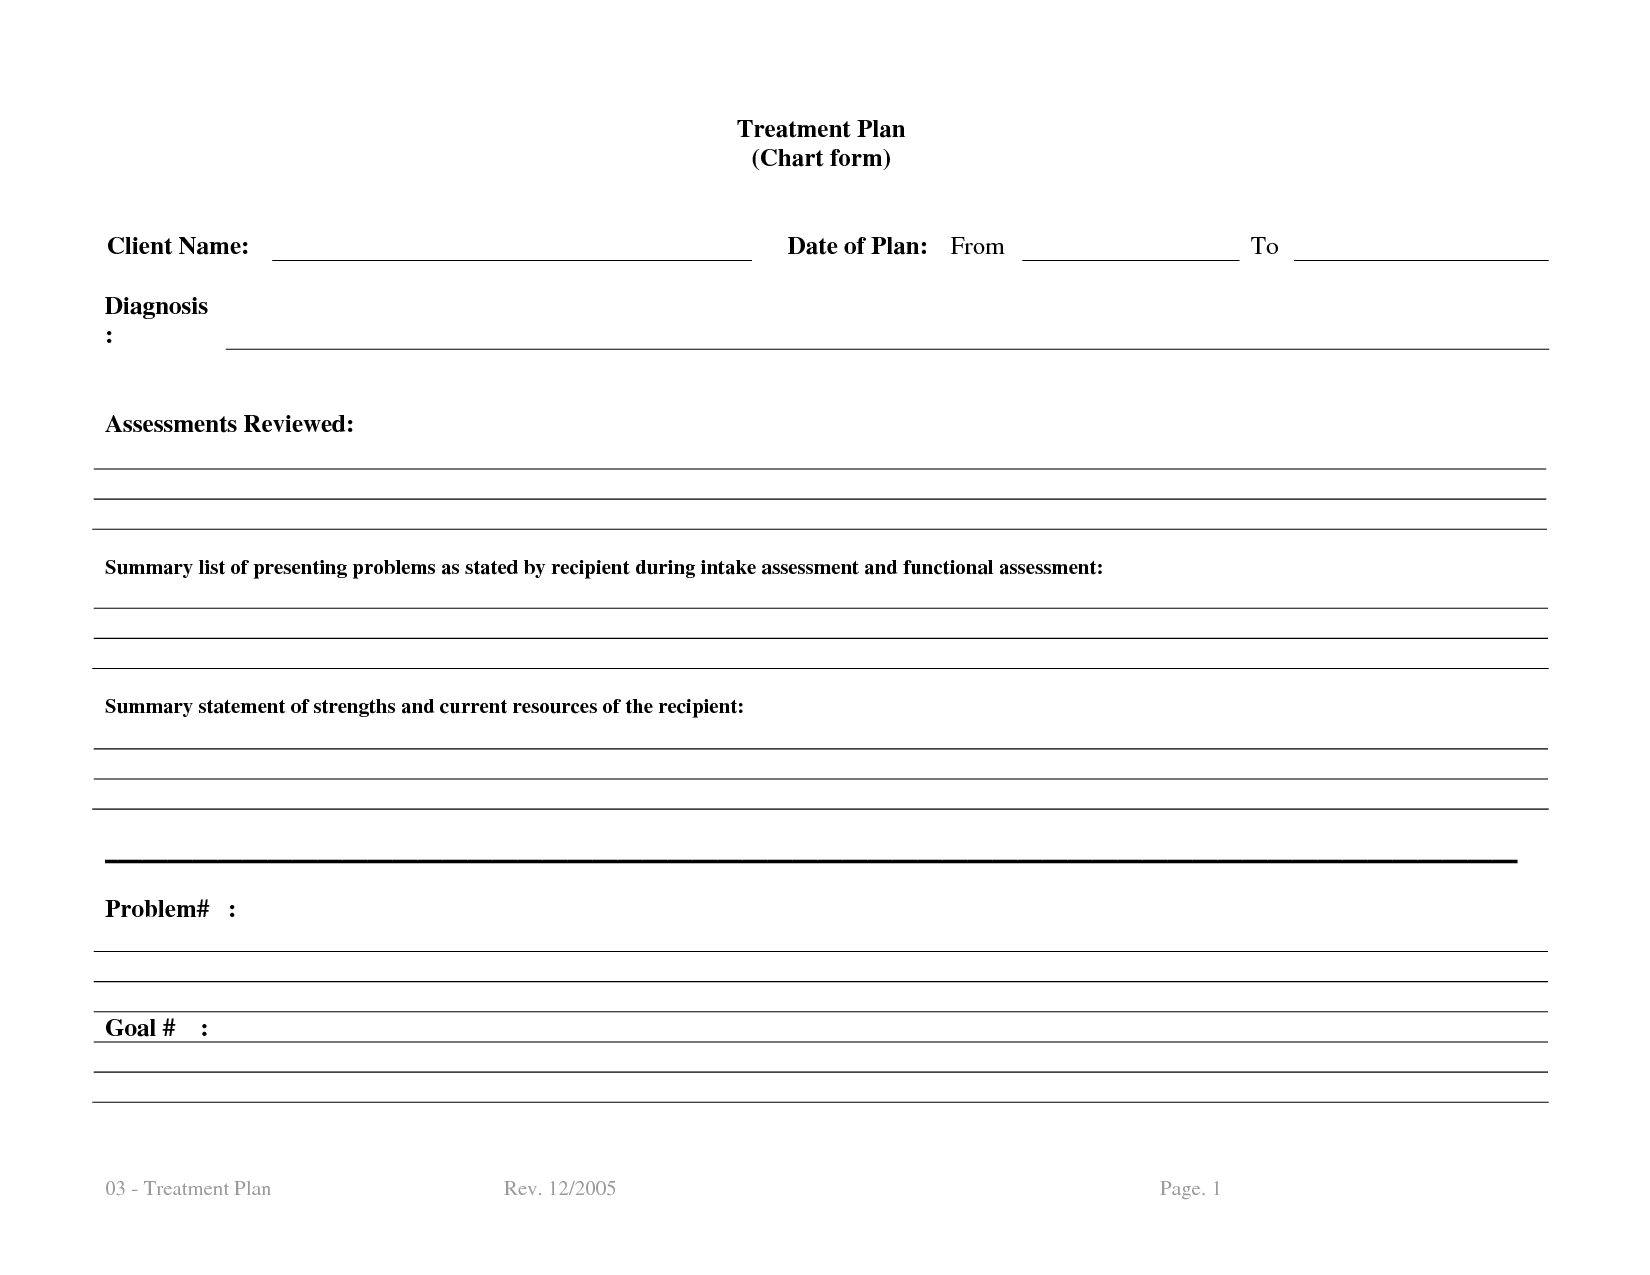 Treatment Plan Template Bm4ucntx